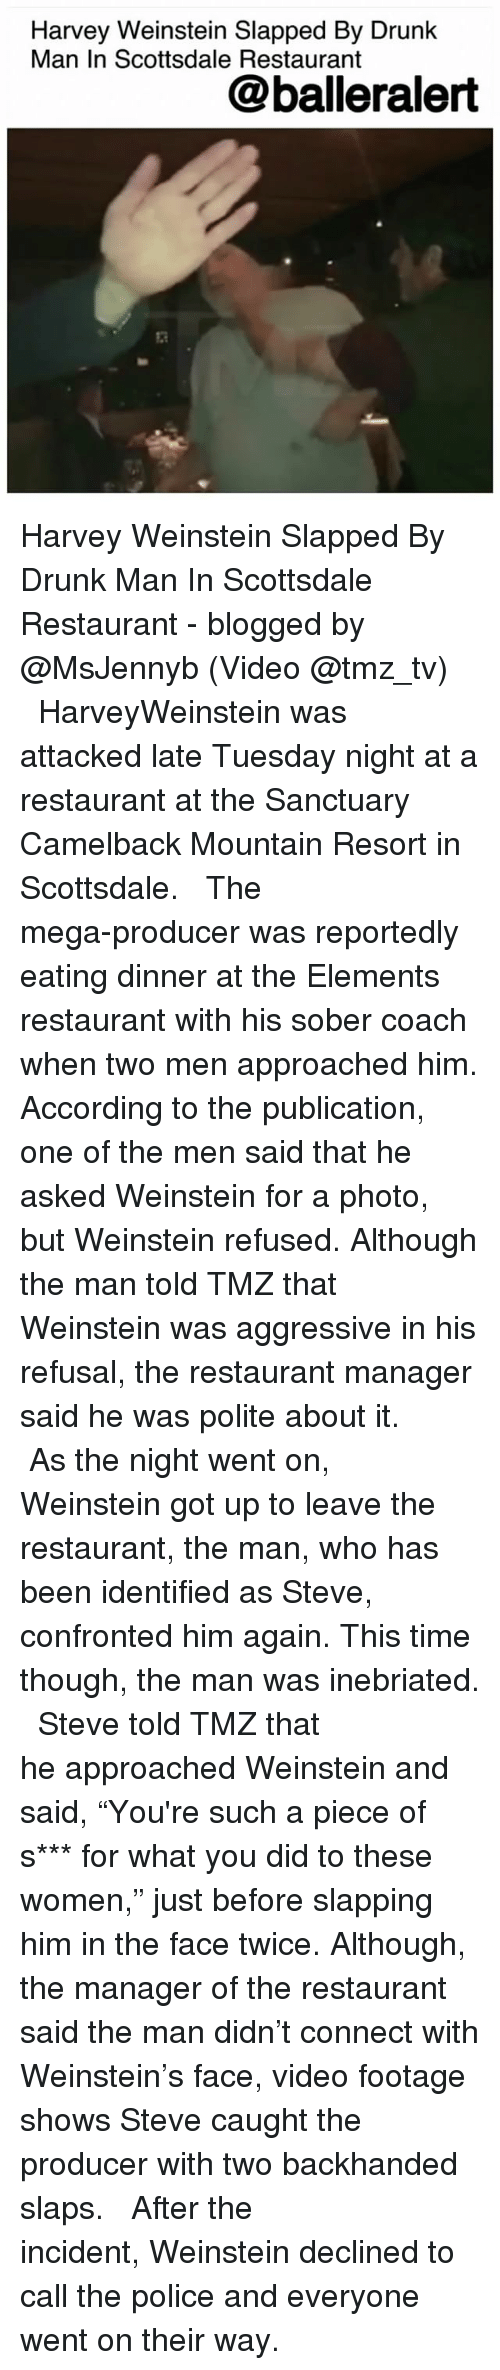 """Drunk, Memes, and Police: Harvey Weinstein Slapped By Drunk  Man In Scottsdale Restaurant  @balleralert Harvey Weinstein Slapped By Drunk Man In Scottsdale Restaurant - blogged by @MsJennyb (Video @tmz_tv) ⠀⠀⠀⠀⠀⠀⠀ ⠀⠀⠀⠀⠀⠀⠀ HarveyWeinstein was attacked late Tuesday night at a restaurant at the Sanctuary Camelback Mountain Resort in Scottsdale. ⠀⠀⠀⠀⠀⠀⠀ ⠀⠀⠀⠀⠀⠀⠀ The mega-producer was reportedly eating dinner at the Elements restaurant with his sober coach when two men approached him. According to the publication, one of the men said that he asked Weinstein for a photo, but Weinstein refused. Although the man told TMZ that Weinstein was aggressive in his refusal, the restaurant manager said he was polite about it. ⠀⠀⠀⠀⠀⠀⠀ ⠀⠀⠀⠀⠀⠀⠀ As the night went on, Weinstein got up to leave the restaurant, the man, who has been identified as Steve, confronted him again. This time though, the man was inebriated. ⠀⠀⠀⠀⠀⠀⠀ ⠀⠀⠀⠀⠀⠀⠀ Steve told TMZ that he approached Weinstein and said, """"You're such a piece of s*** for what you did to these women,"""" just before slapping him in the face twice. Although, the manager of the restaurant said the man didn't connect with Weinstein's face, video footage shows Steve caught the producer with two backhanded slaps. ⠀⠀⠀⠀⠀⠀⠀ ⠀⠀⠀⠀⠀⠀⠀ After the incident, Weinstein declined to call the police and everyone went on their way."""